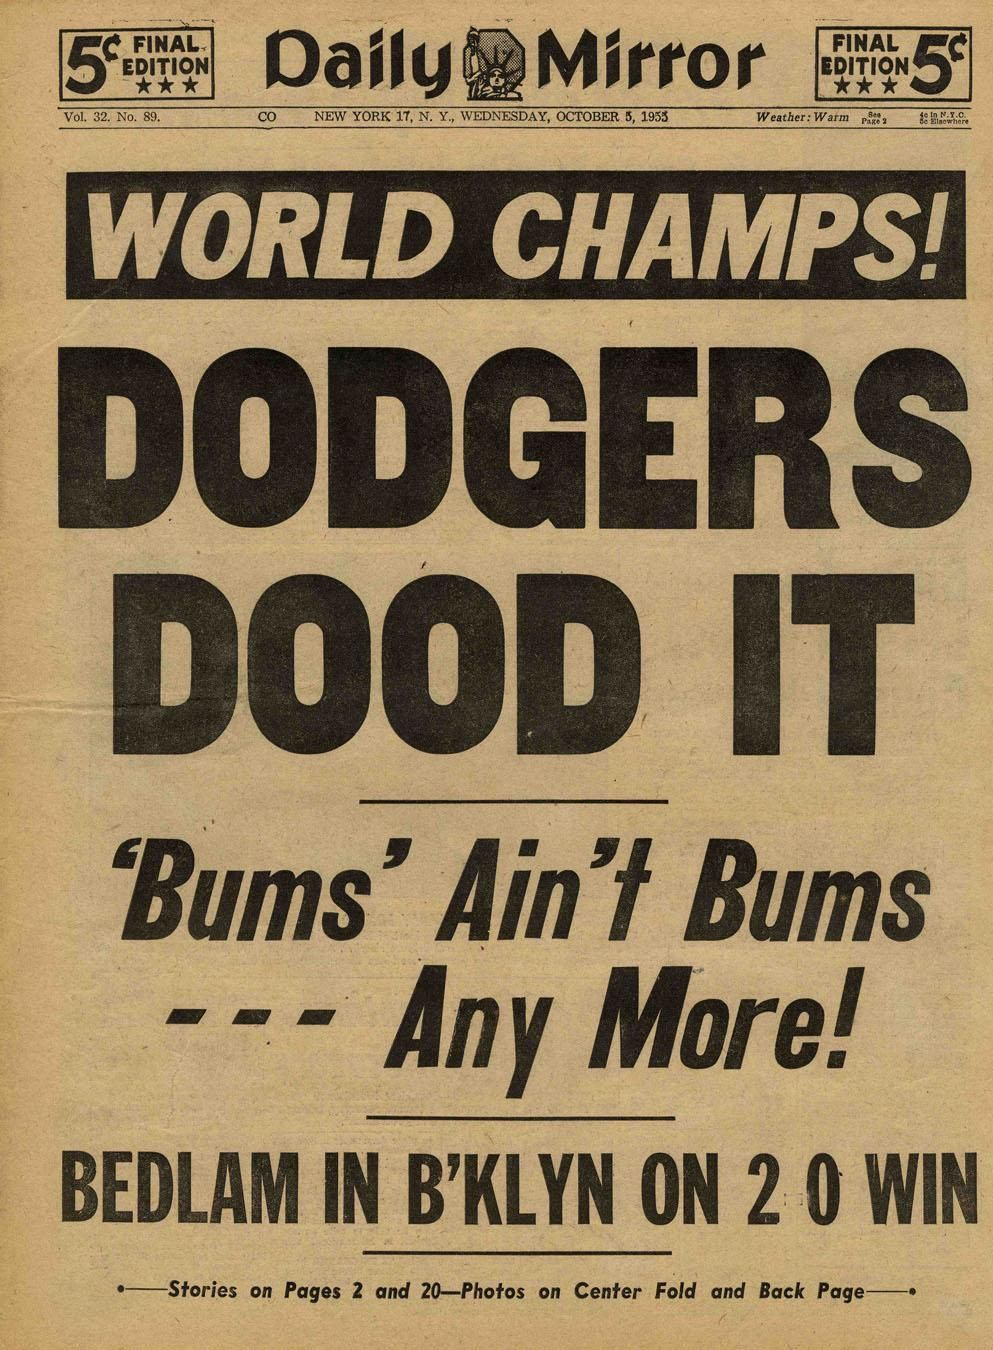 Pin by ☘️ RJ Hayden ☘️ on Brooklyn Dodgers (With images